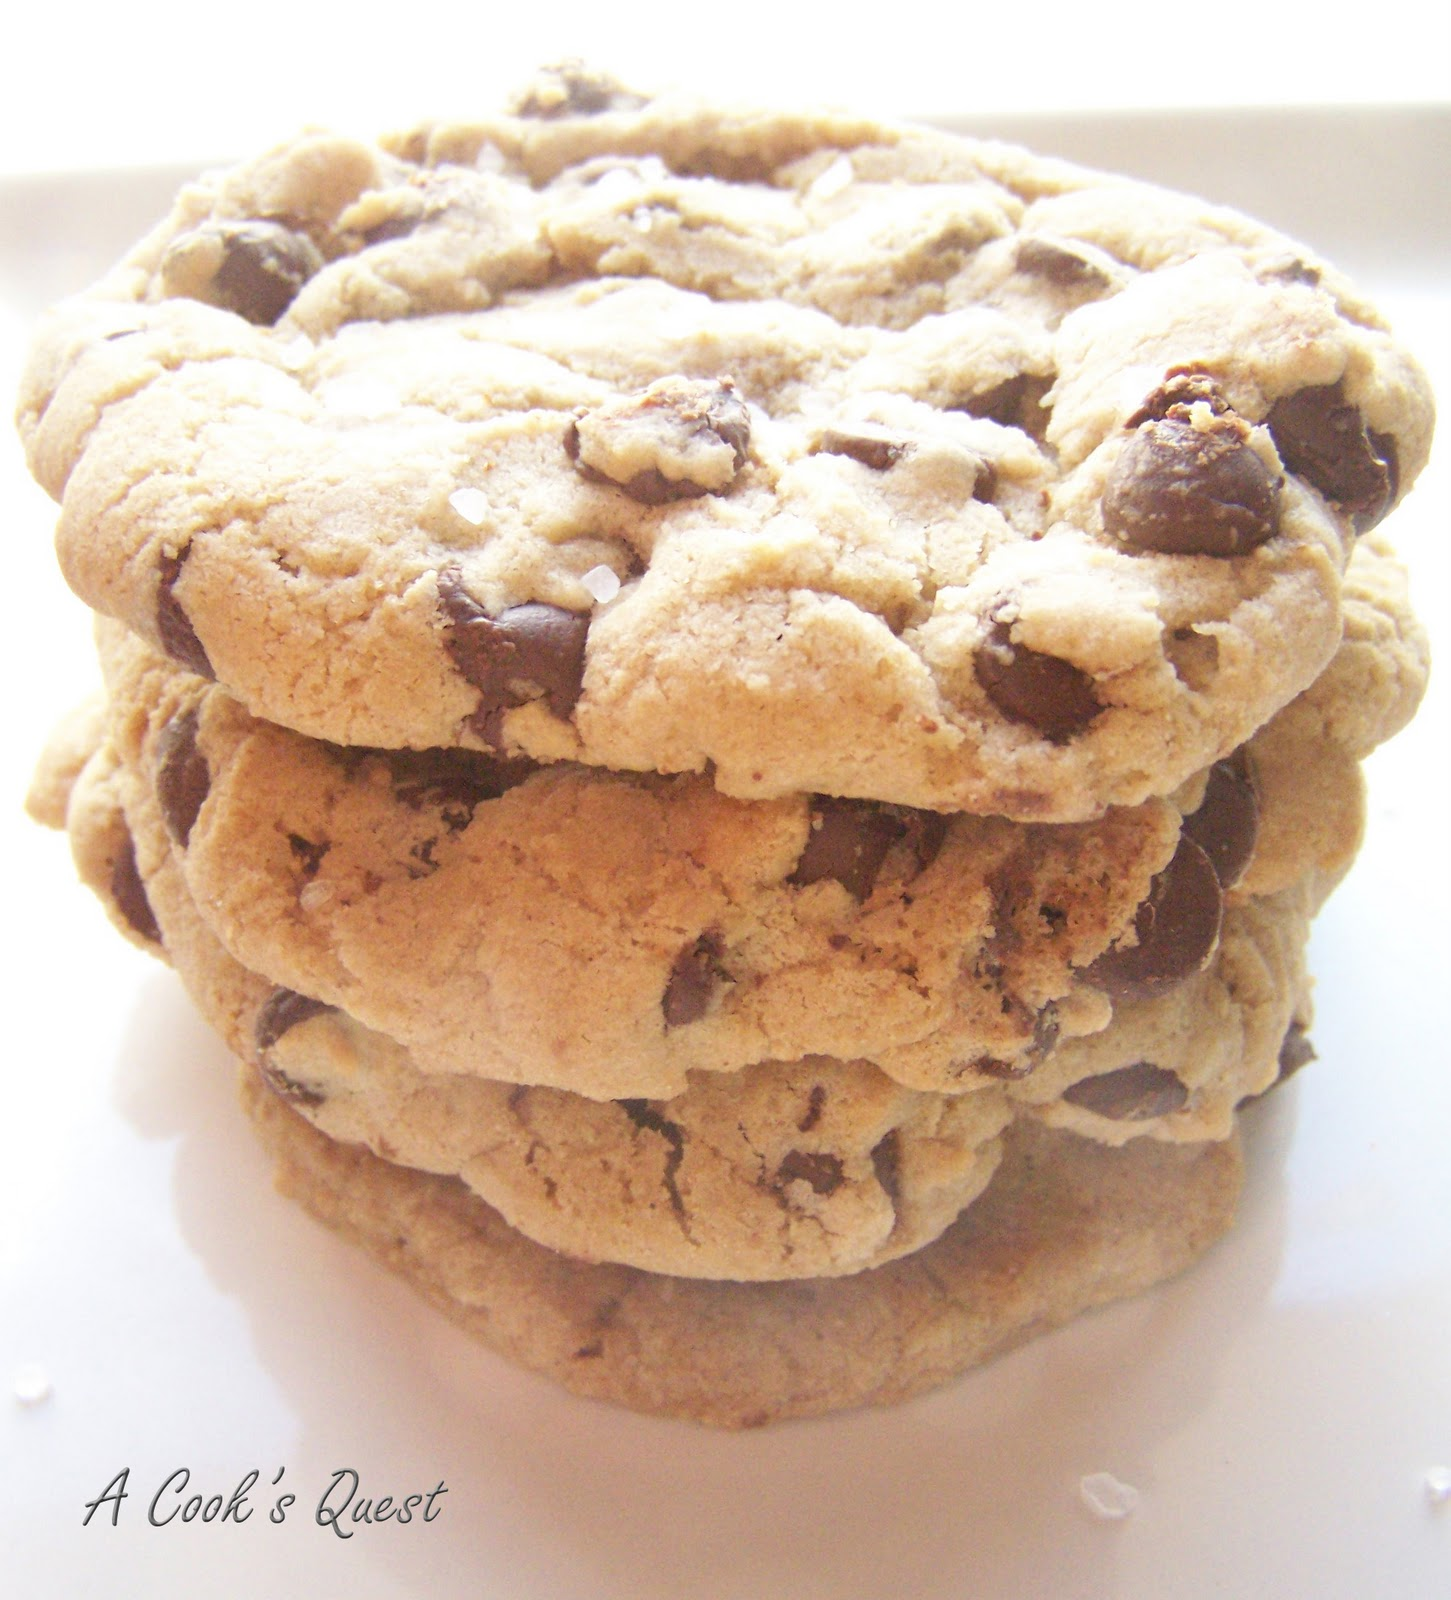 Cook's Quest: Thick and Chewy Chocolate Chip Cookies